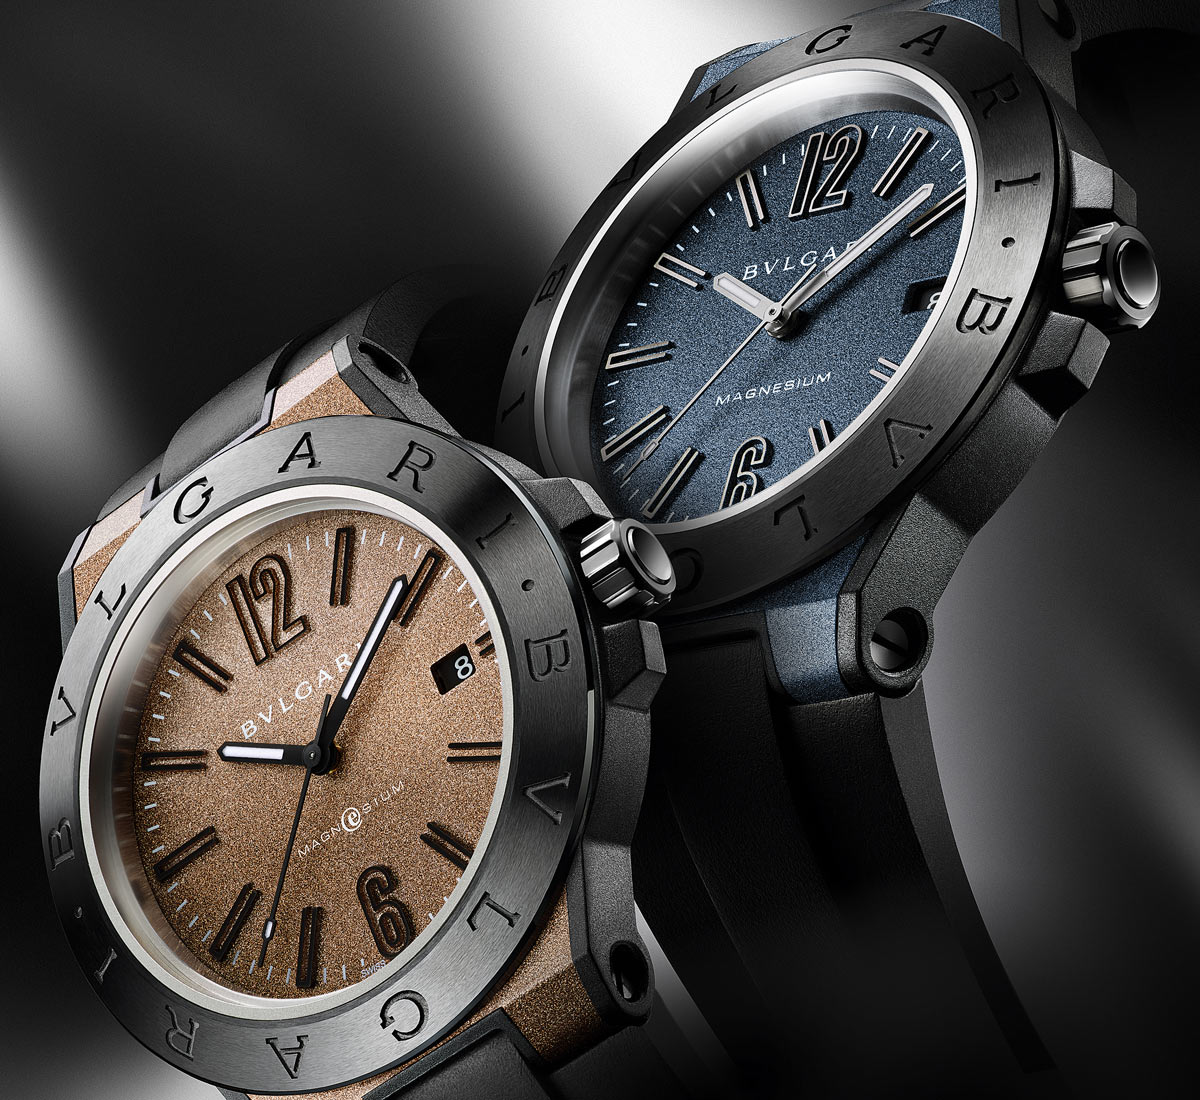 Basel Watch Fair Preview: The brand new bvlgari replica watches for sale Diagono